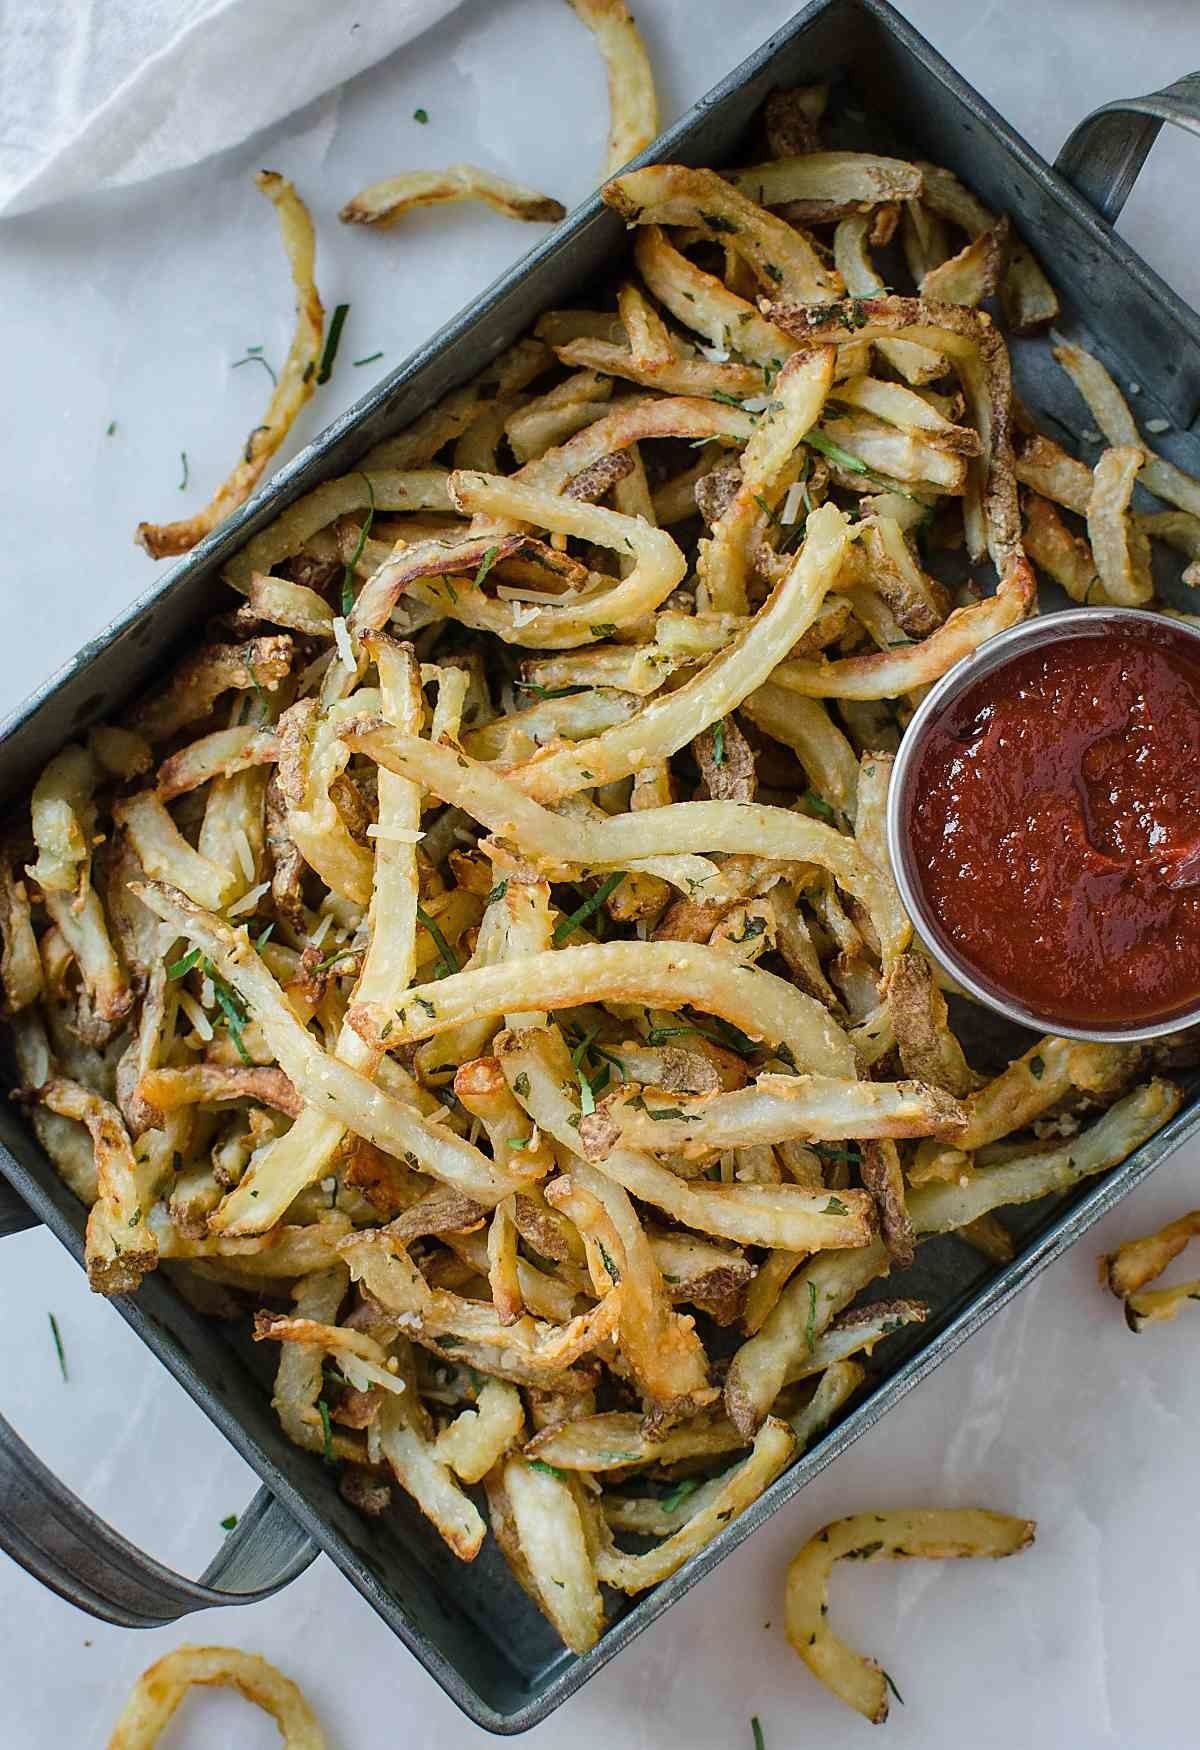 Low Fat French Fries  -  You can make an entire batch of French fries using one tablespoon of olive oil. And honestly, that alone makes the air fryer worth it, in my opinion.